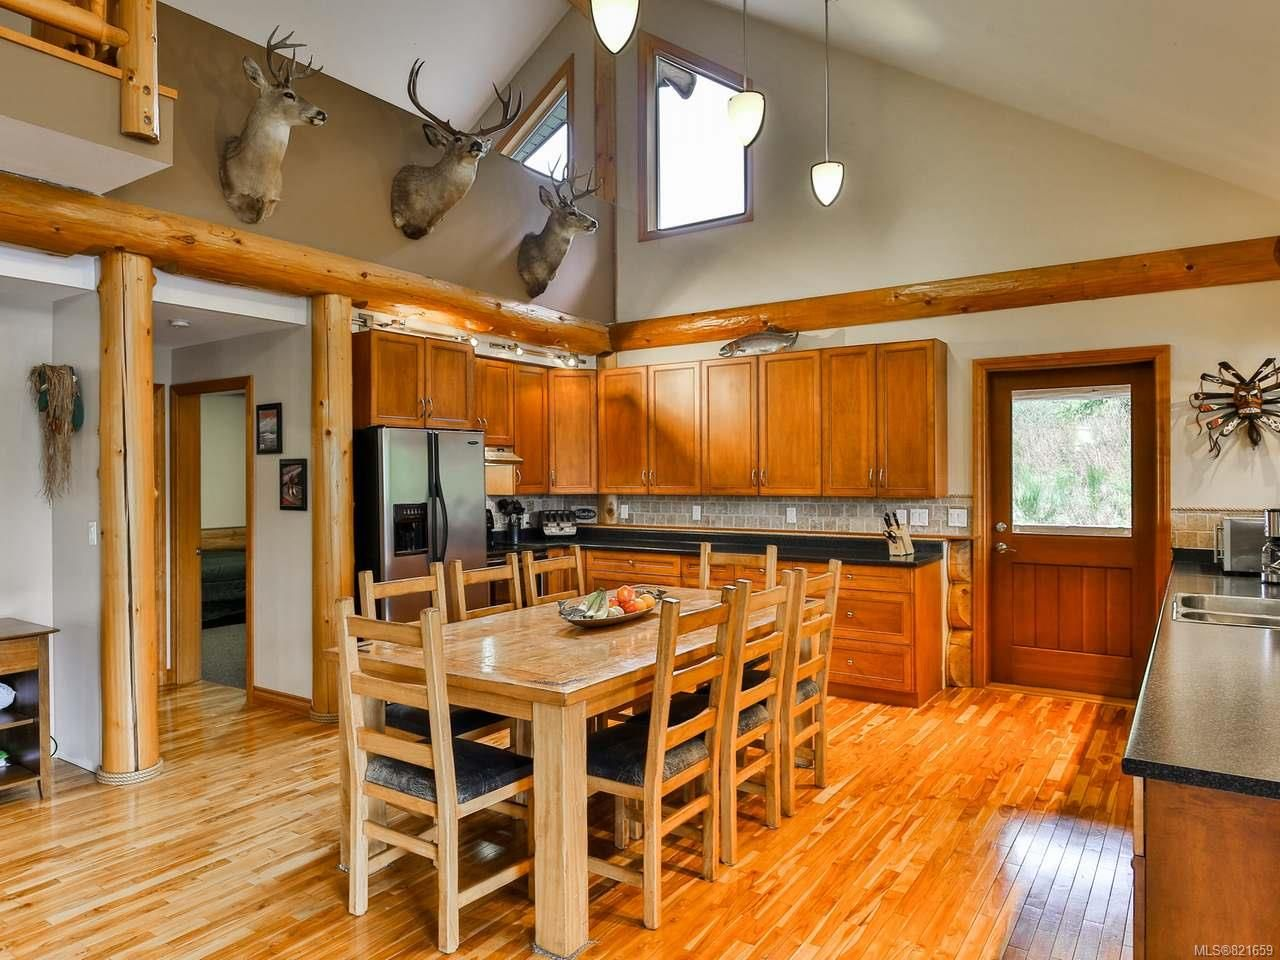 Photo 7: Photos: 1049 Helen Rd in UCLUELET: PA Ucluelet House for sale (Port Alberni)  : MLS®# 821659